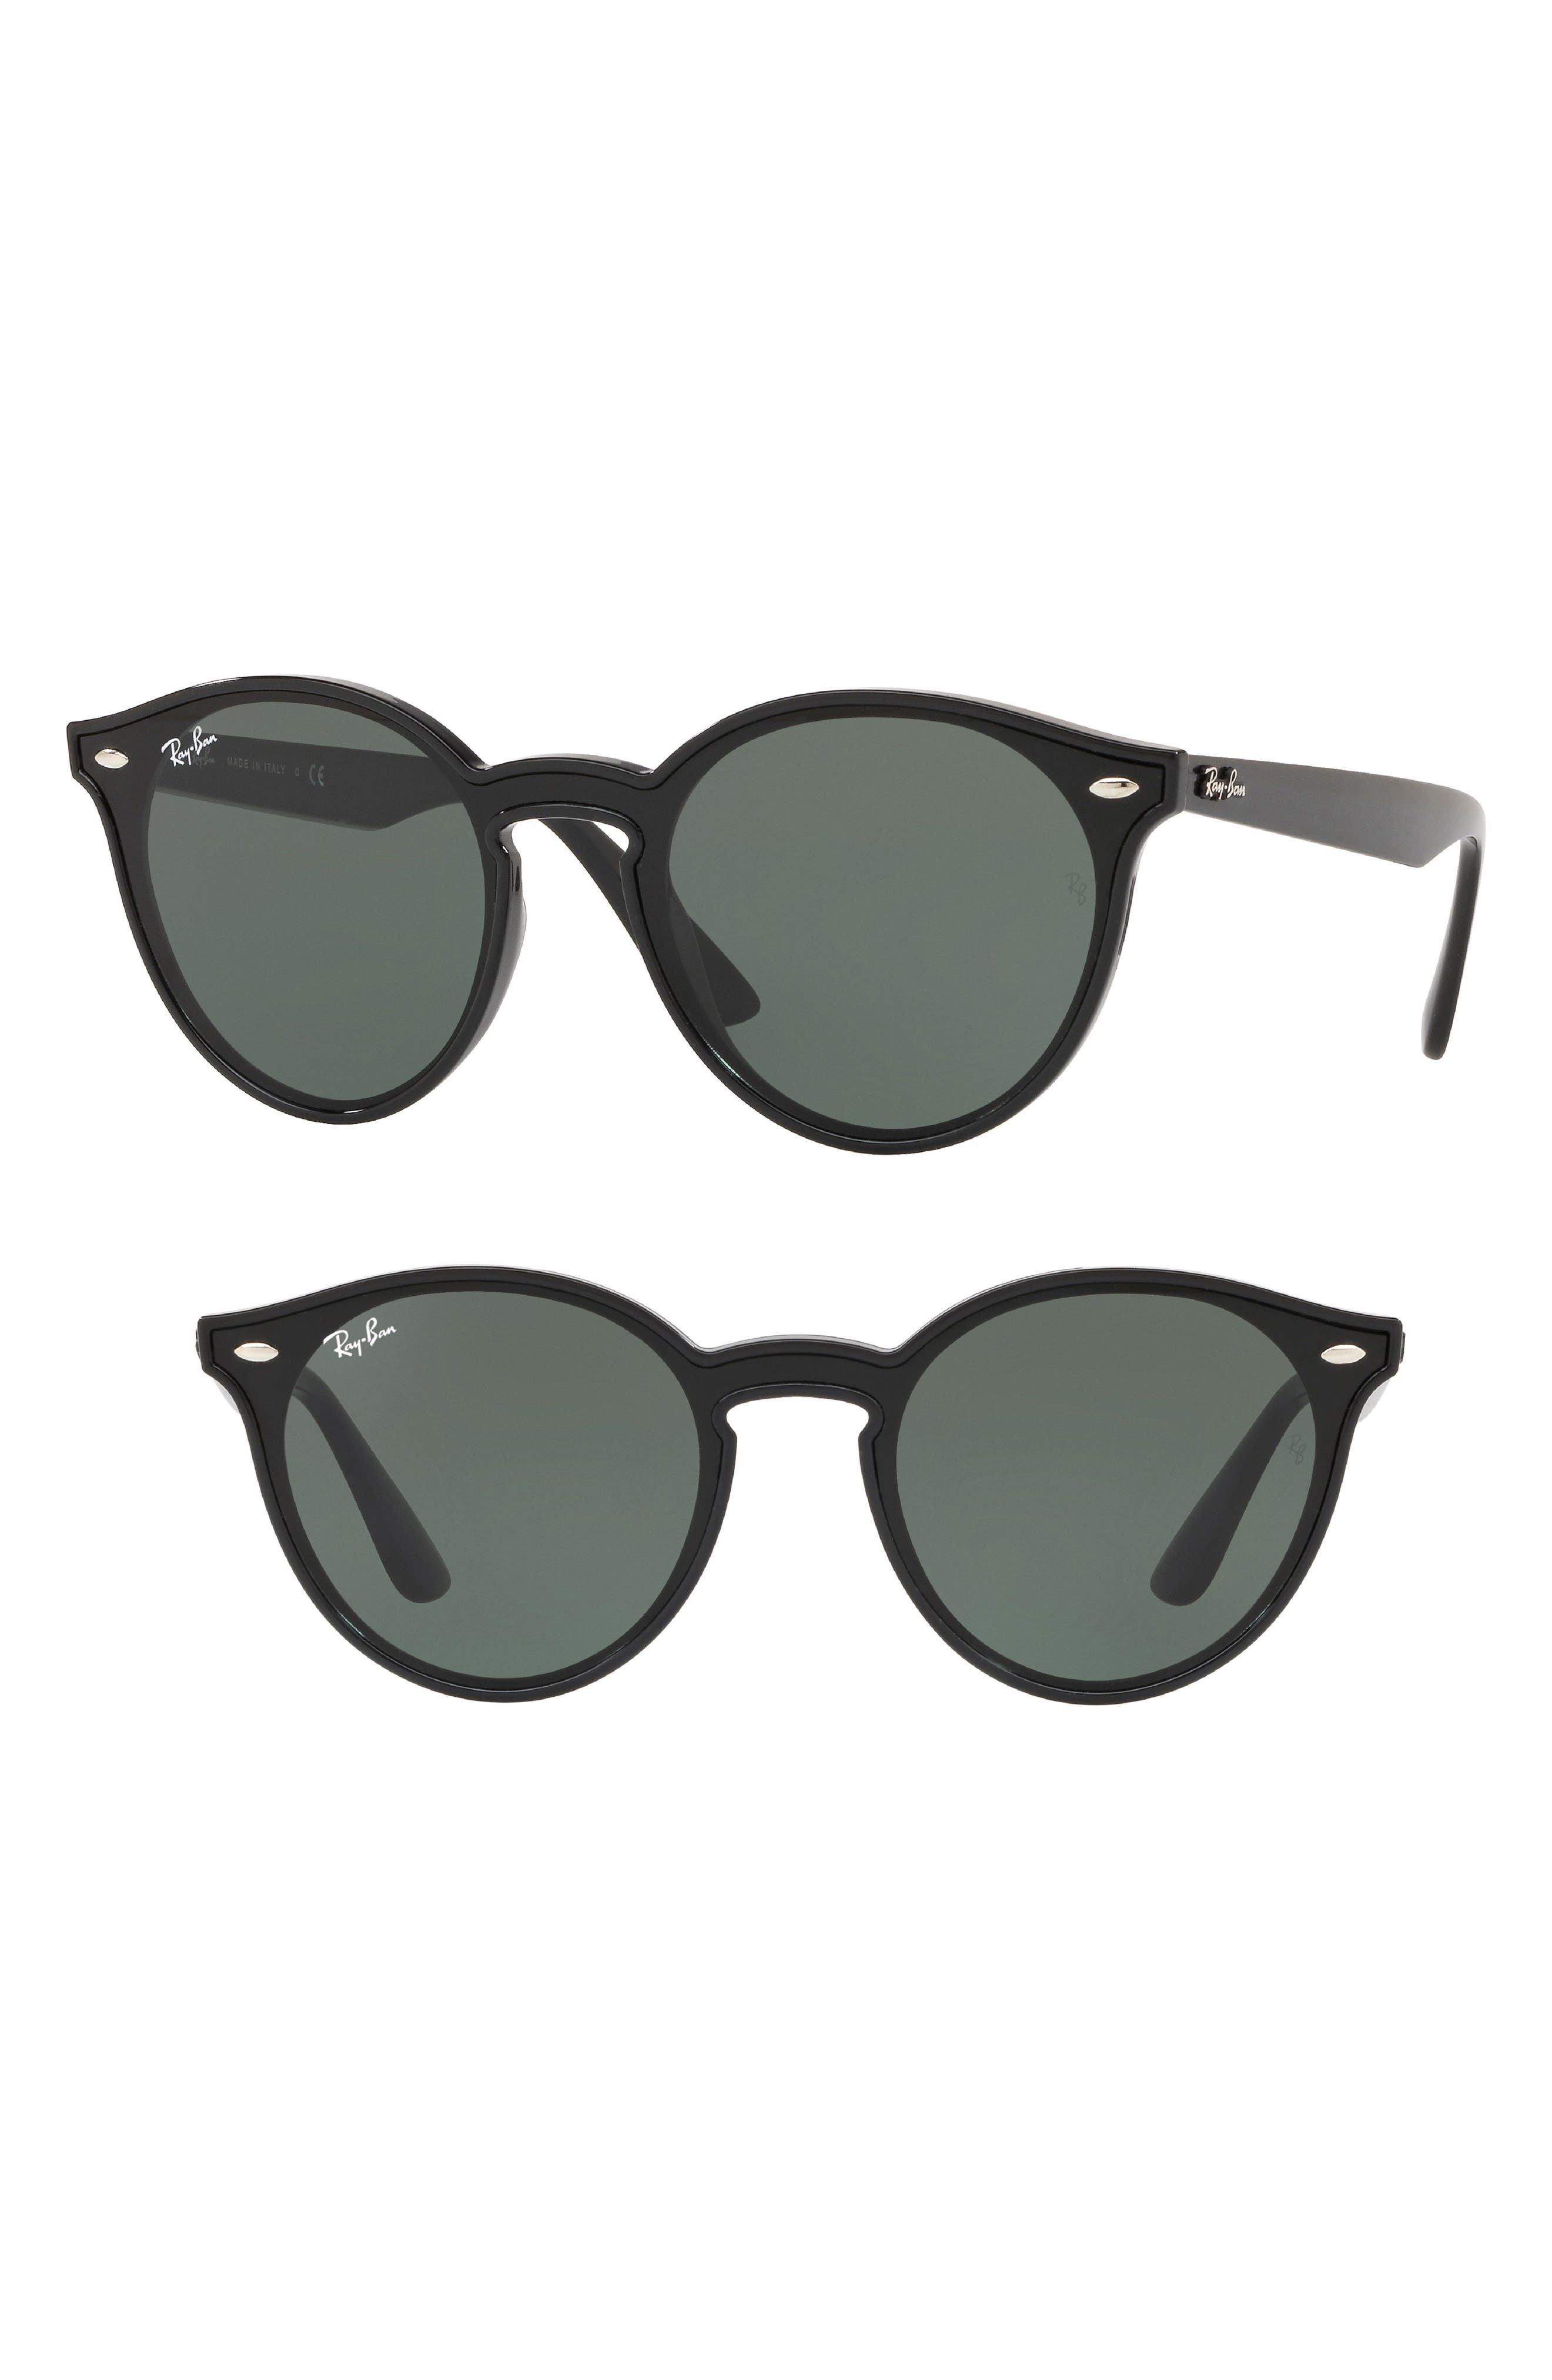 Blaze 37mm Round Sunglasses,                             Main thumbnail 1, color,                             Black Solid